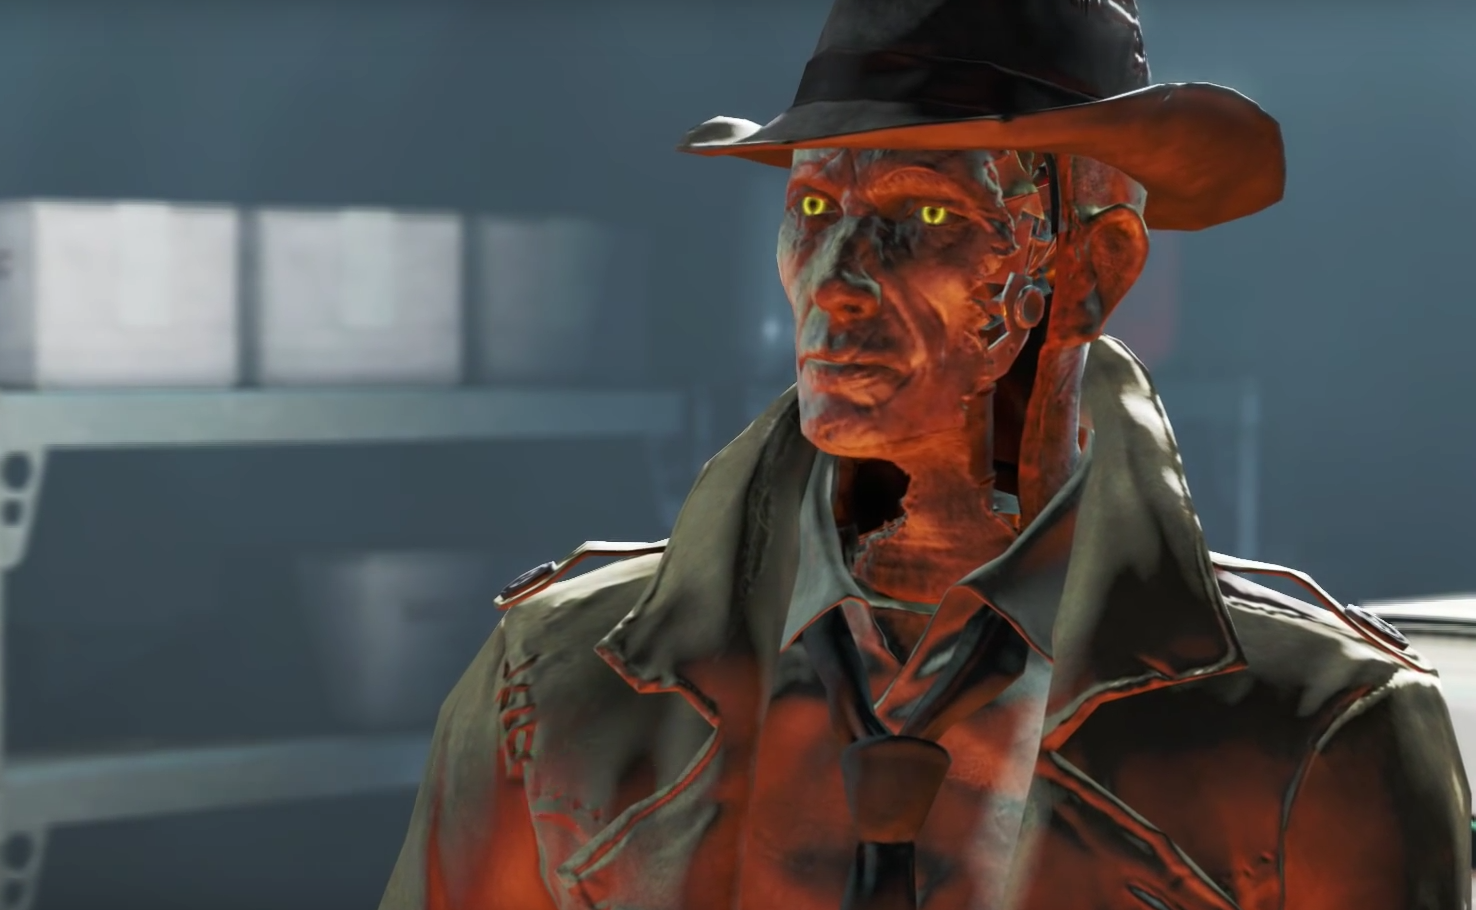 nick valentine best fallout 4 companions